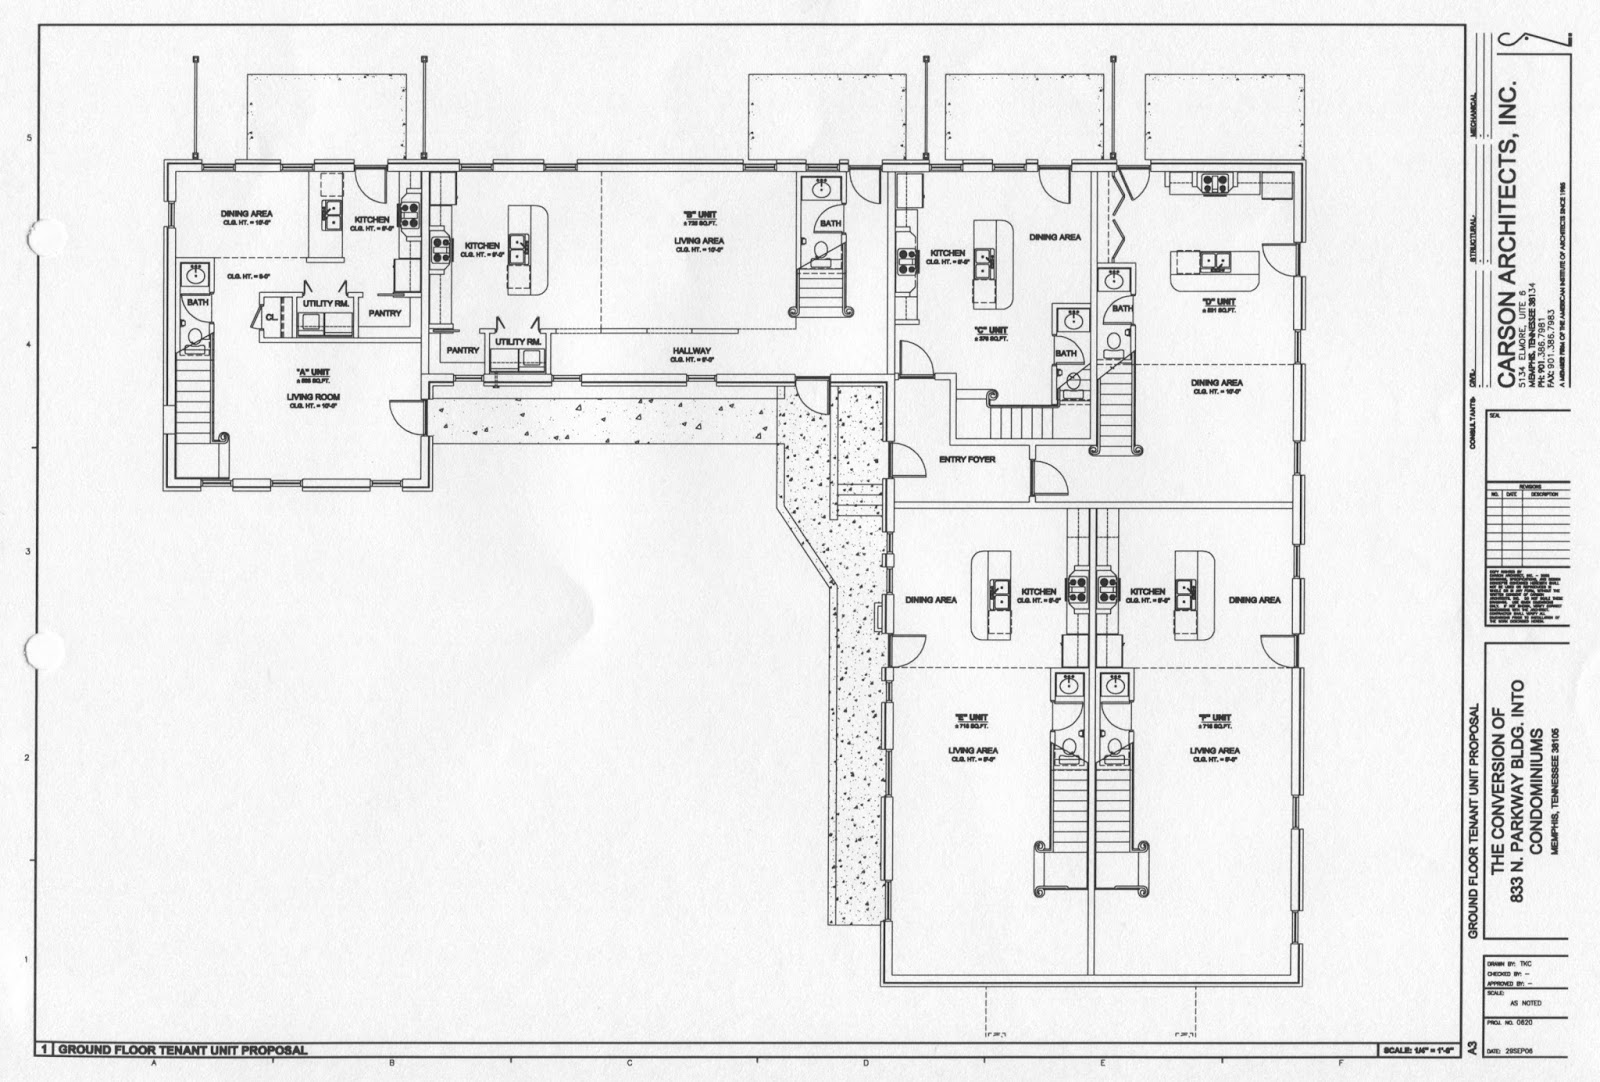 Lost Memphis 26 Pkwy Seventh Day Adventist Crme De Memph Claw Schematic This Is The Ground Floor Which Contained A Living And Dining Room Kitchen 1 2 Bath In Each Unit